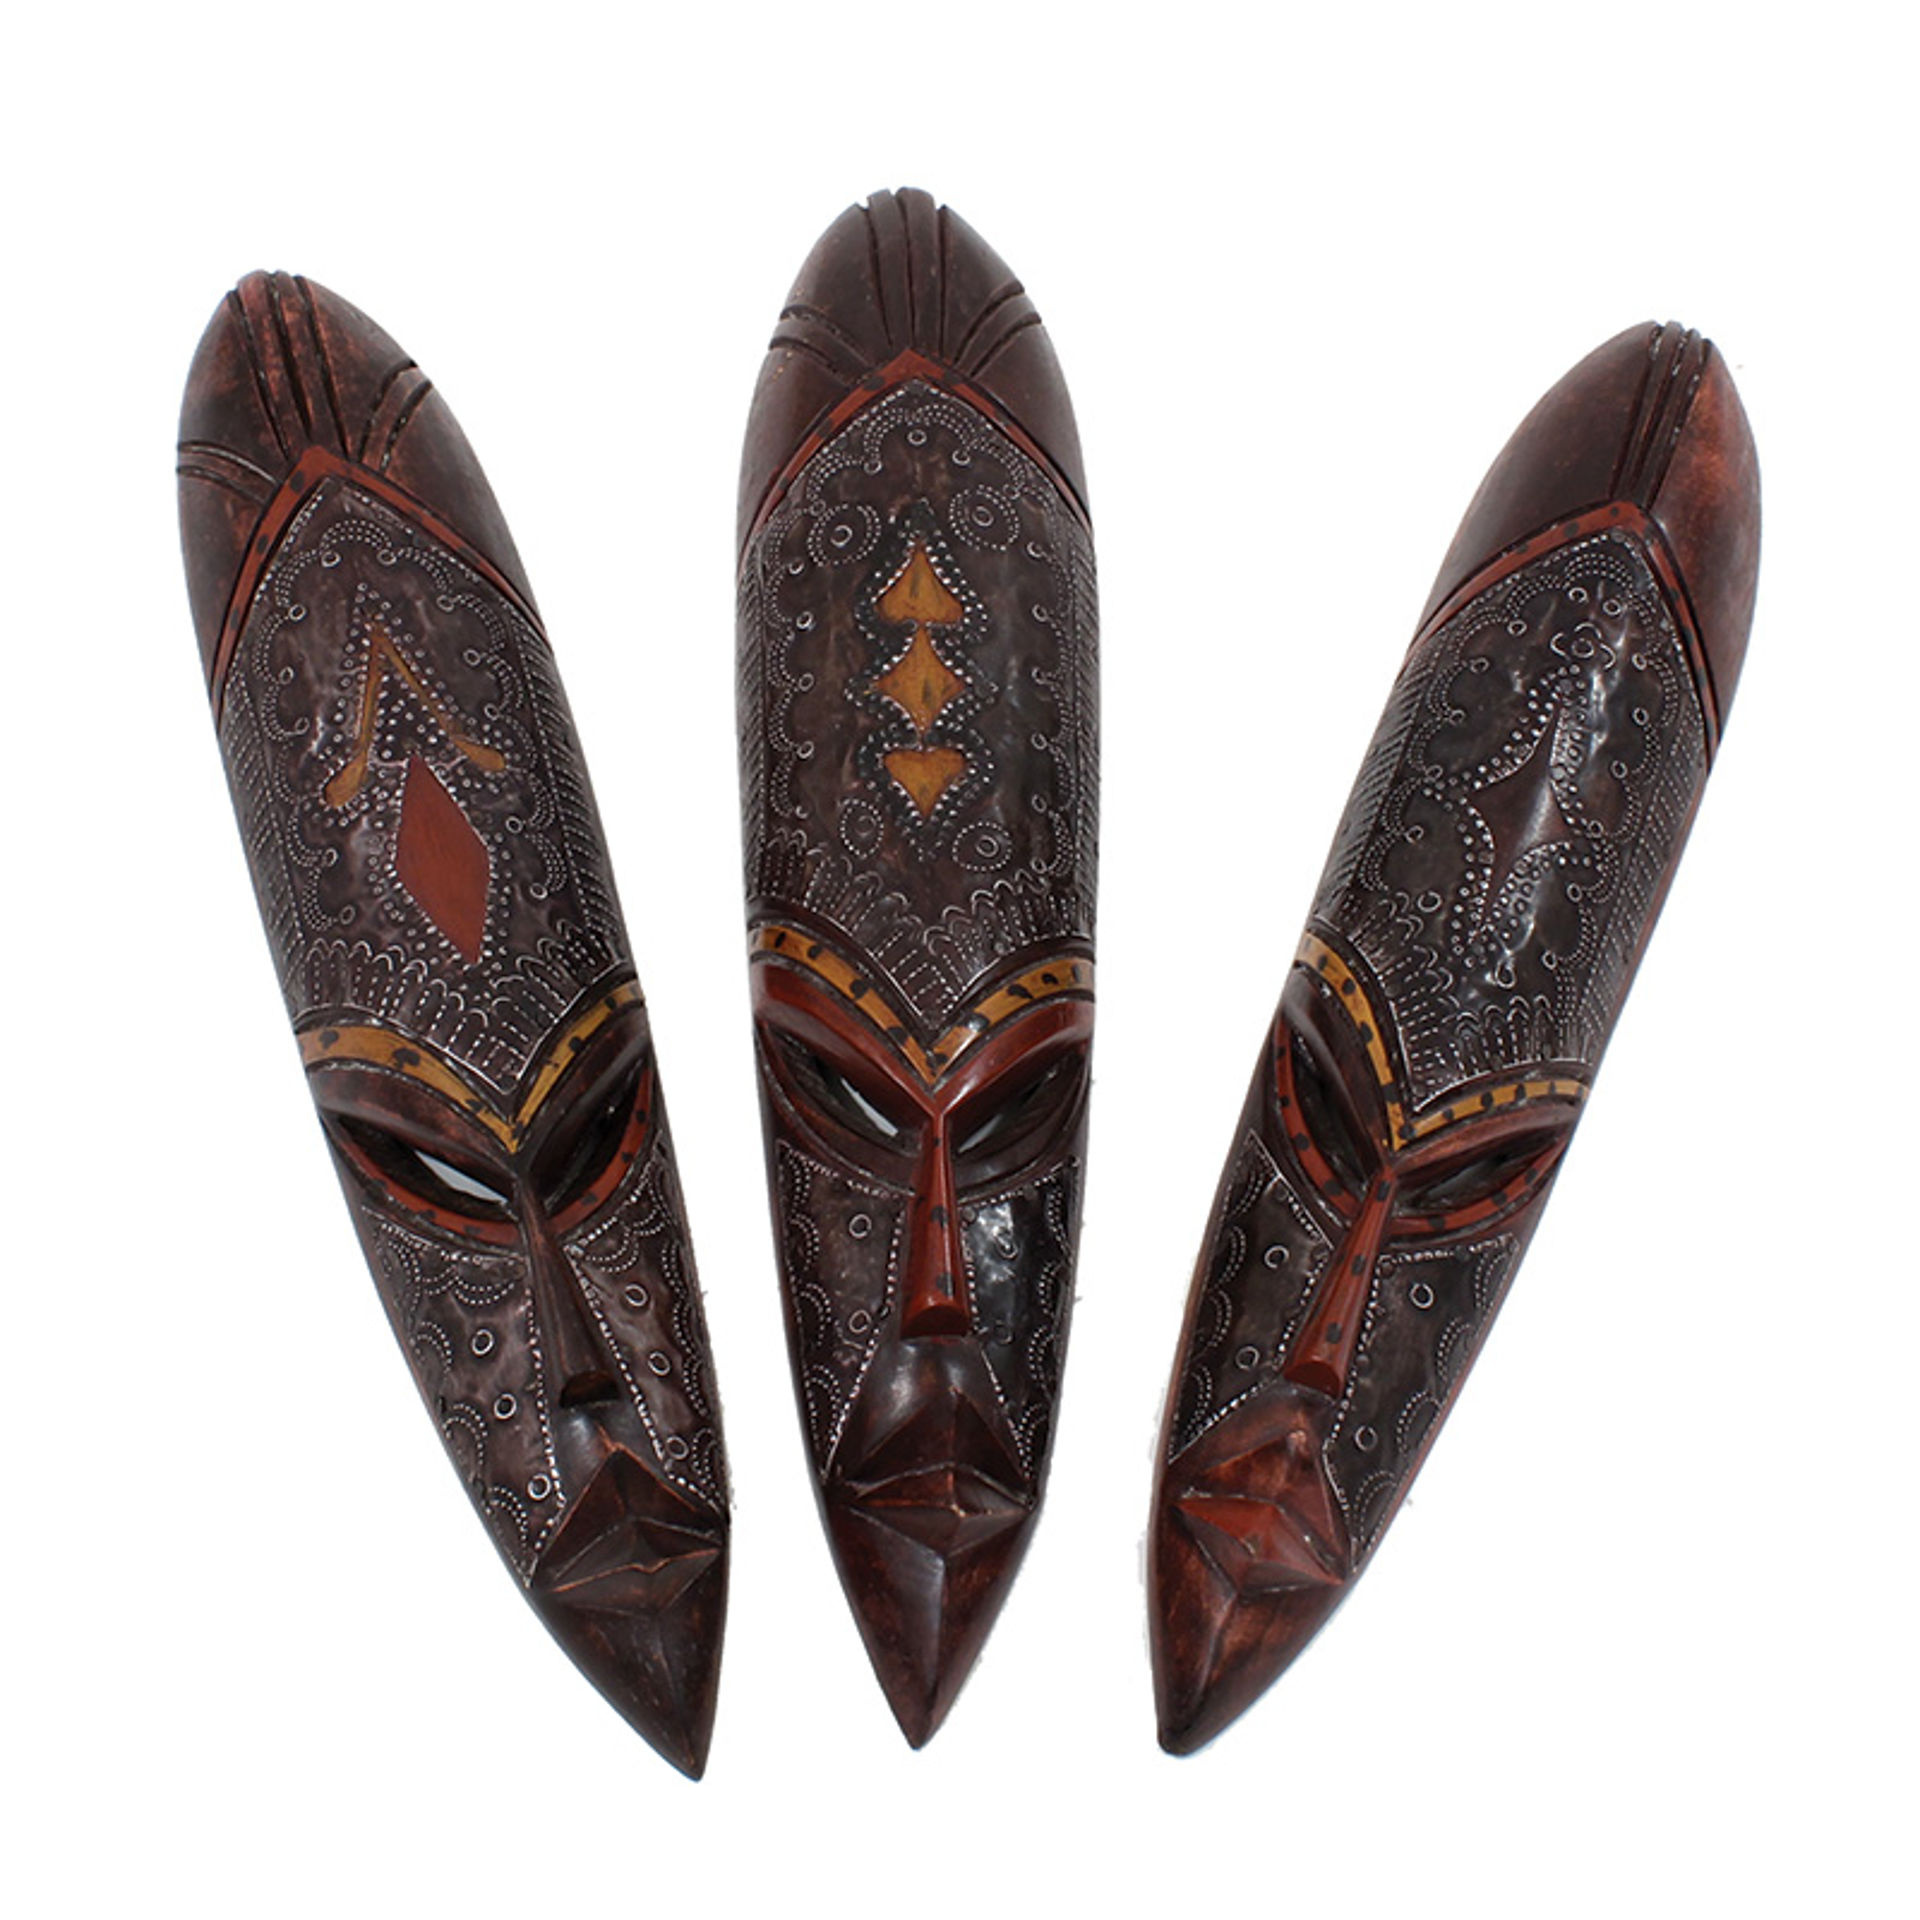 Picture of Medium Ghana Fang Mask - Metal/Wood